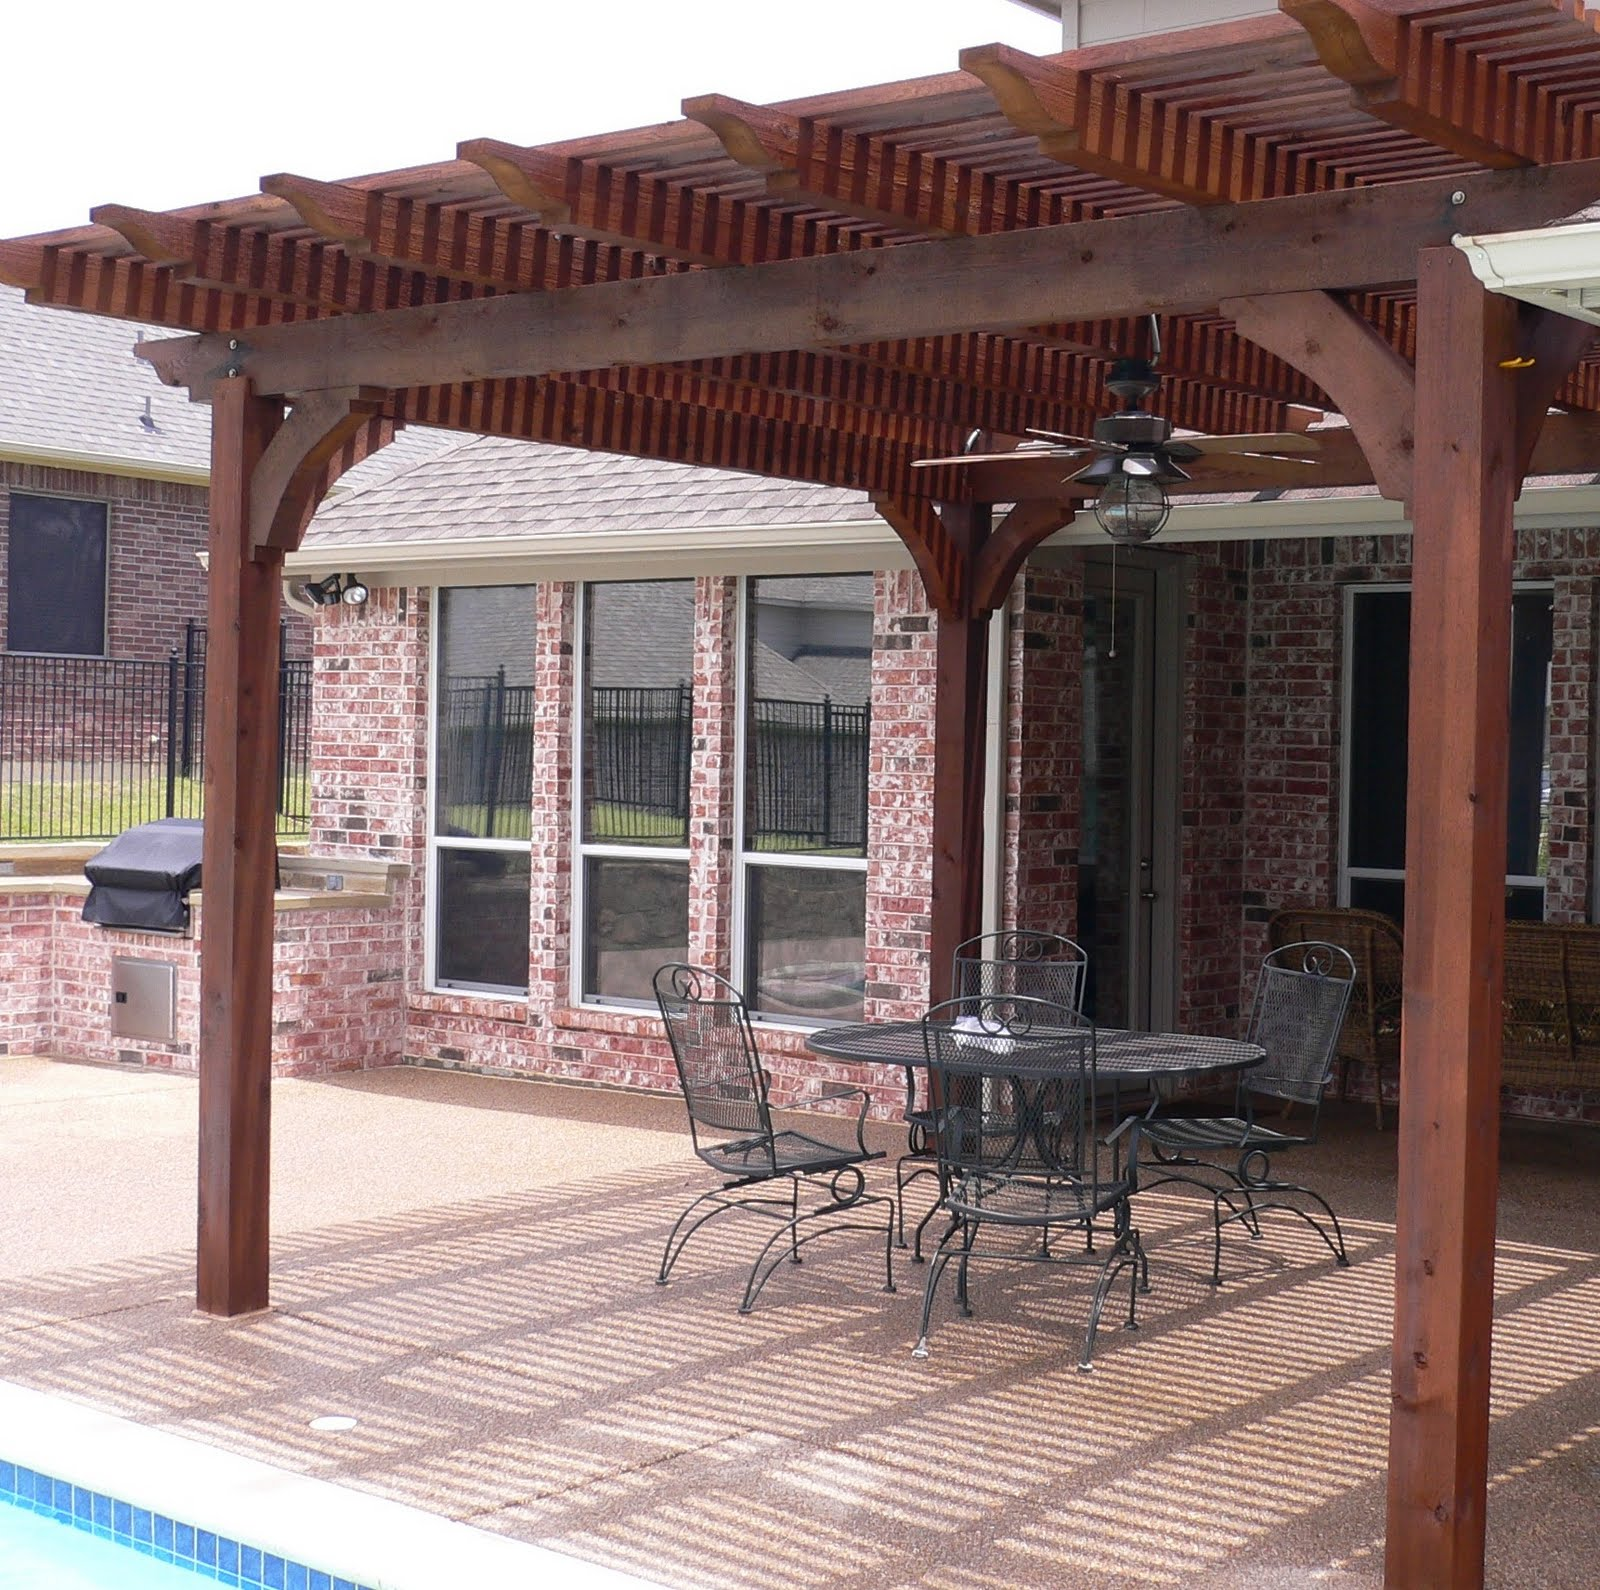 patio roof designs: Liven Up Your Patio - Wooden Patio Covers on Backyard Patio Cover Ideas  id=63533